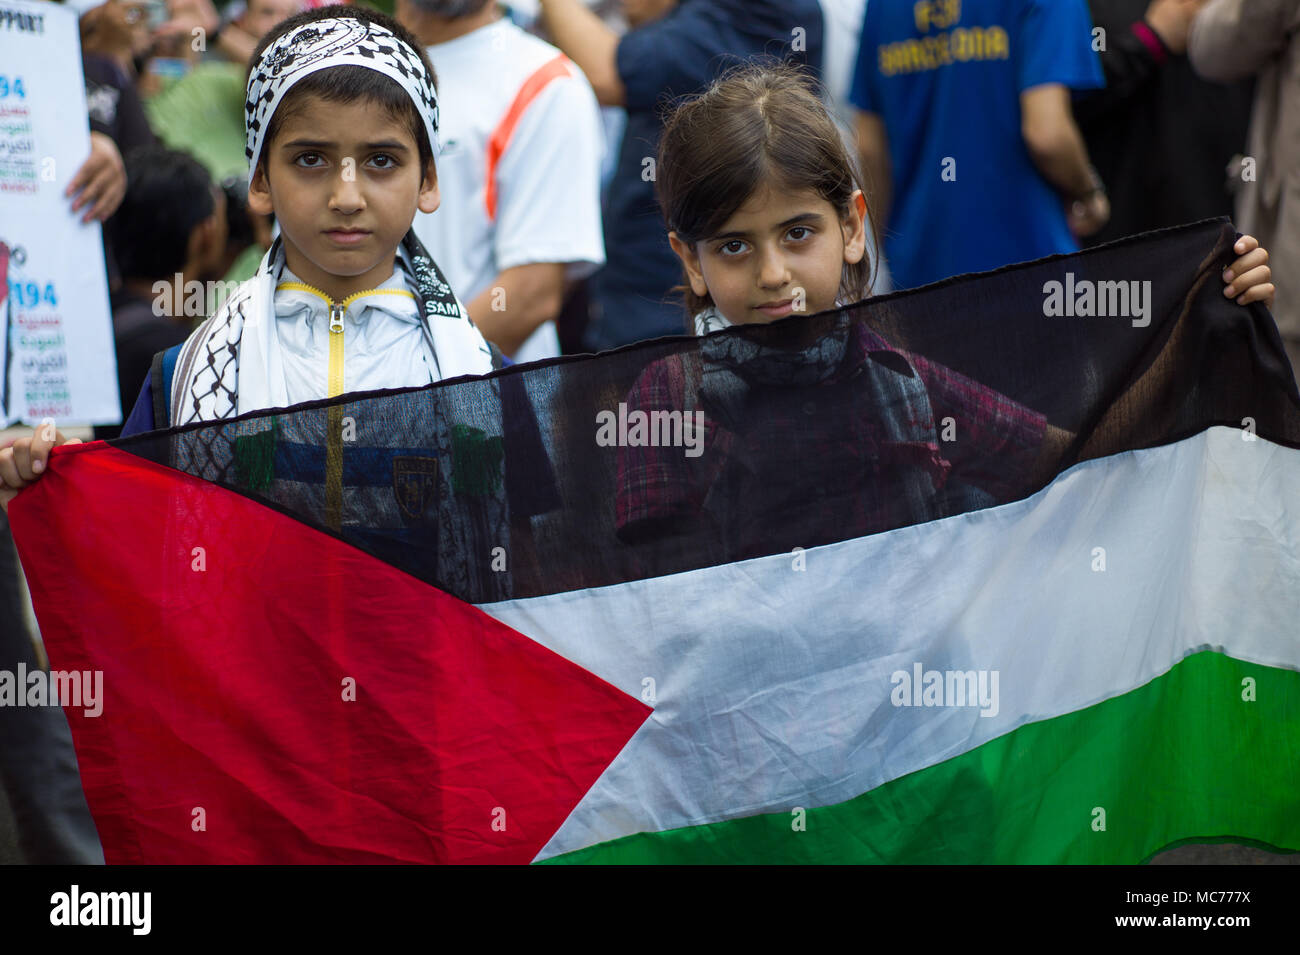 Kuala Lumpur, Malaysia. 13th Apr, 2018. A young protesters hold a Palestinian flag during a rally to commemorate Palestinian Land Day at outside of the US embassy in Kuala Lumpur, Malaysia on April 13, 2018. The protests are being held around the world. Credit: Chris JUNG/Alamy Live News - Stock Image